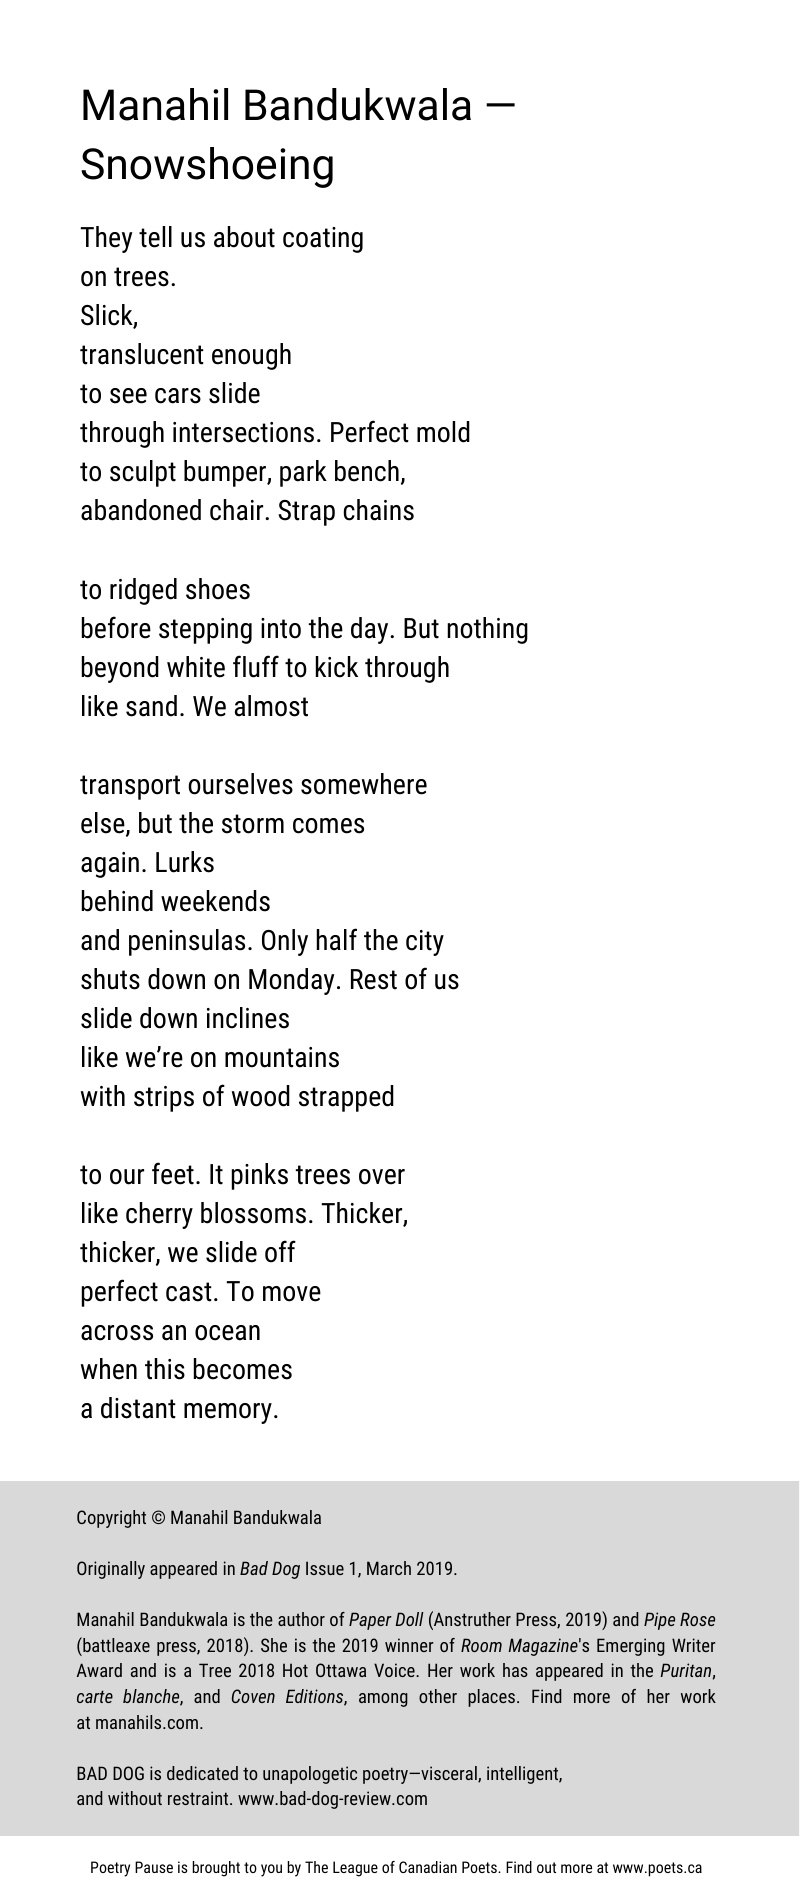 Poem author and title: Manahil Bandukwala — Snowshoeing Poem: They tell us about coating on trees. Slick, translucent enough to see cars slide through intersections. Perfect mold to sculpt bumper, park bench, abandoned chair. Strap chains to ridged shoes before stepping into the day. But nothing beyond white fluff to kick through like sand. We almost transport ourselves somewhere else, but the storm comes again. Lurks behind weekends and peninsulas. Only half the city shuts down on Monday. Rest of us slide down inclines like we're on mountains with strips of wood strapped to our feet. It pinks trees over like cherry blossoms. Thicker, thicker, we slide off perfect cast. To move across an ocean when this becomes a distant memory. End of poem. Copyright © Manahil Bandukwala Originally appeared in Bad Dog Issue 1, March 2019. Manahil Bandukwala is the author of Paper Doll (Anstruther Press, 2019) and Pipe Rose (battleaxe press, 2018). She is the 2019 winner of Room Magazine's Emerging Writer Award and is a Tree 2018 Hot Ottawa Voice. Her work has appeared in the Puritan, carte blanche, and Coven Editions, among other places. Find more of her work at manahils.com. BAD DOG is dedicated to unapologetic poetry—visceral, intelligent, and without restraint. www.bad-dog-review.com